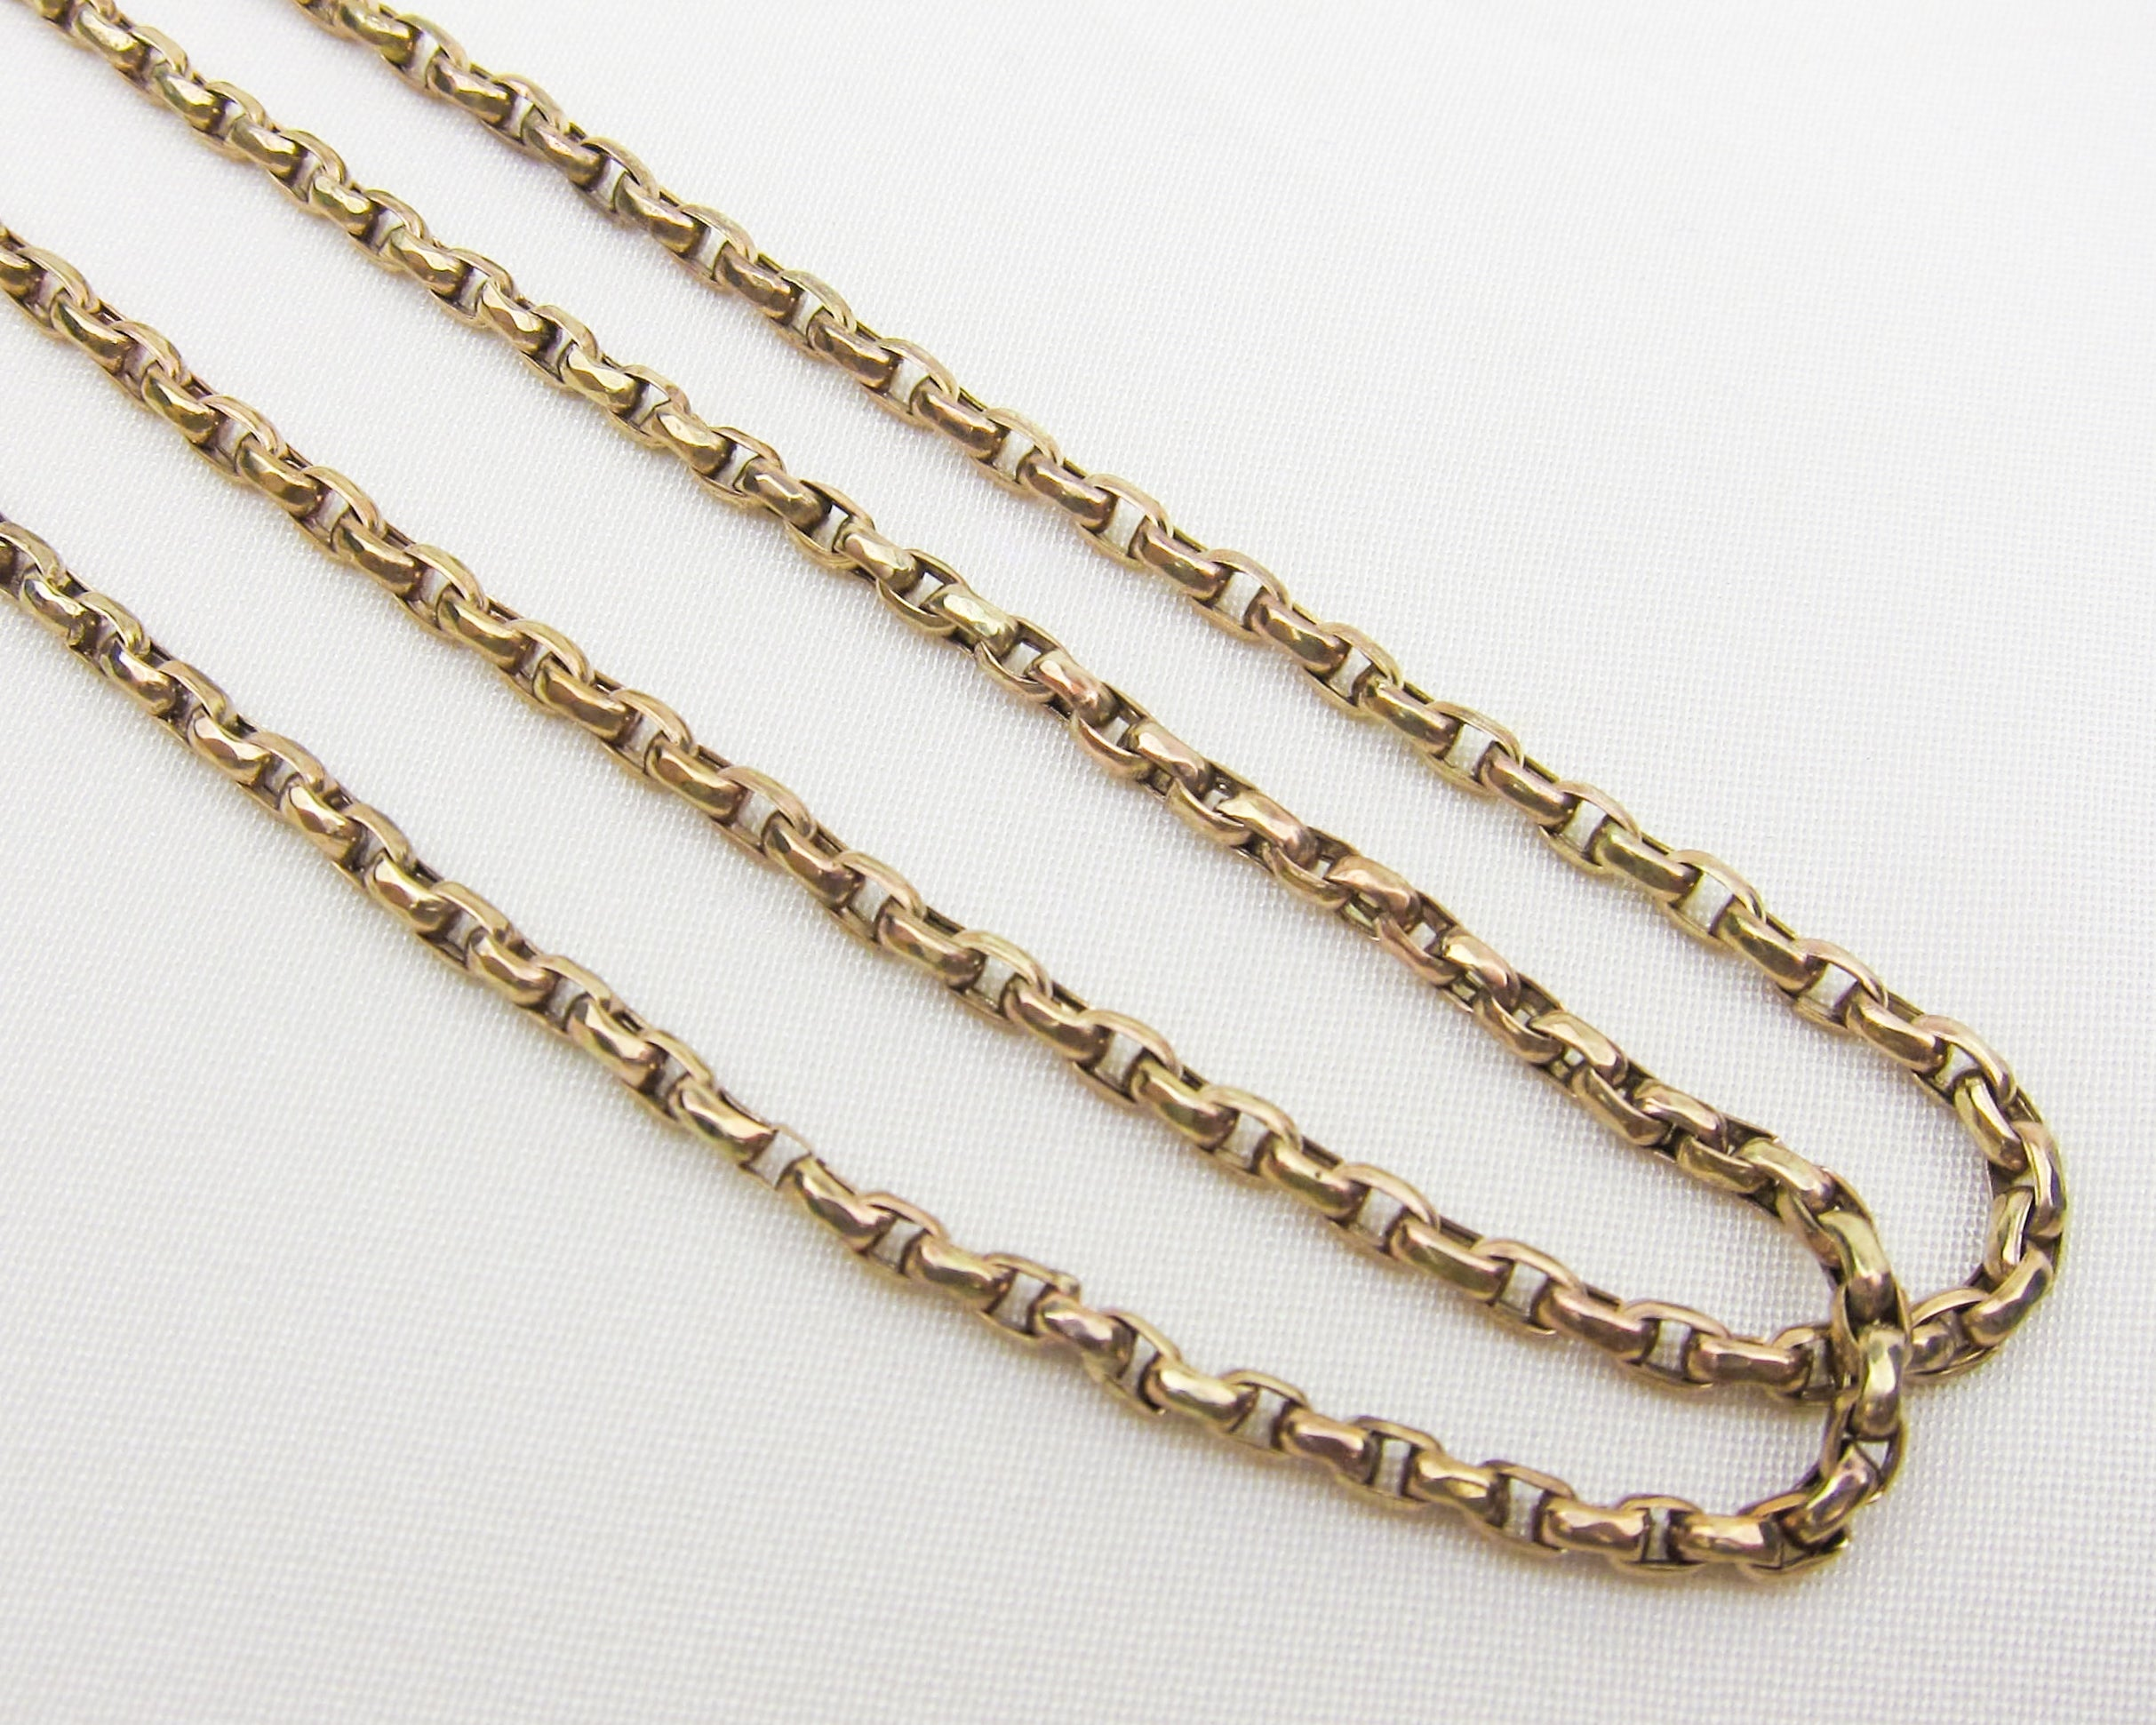 9KT-gold-chain